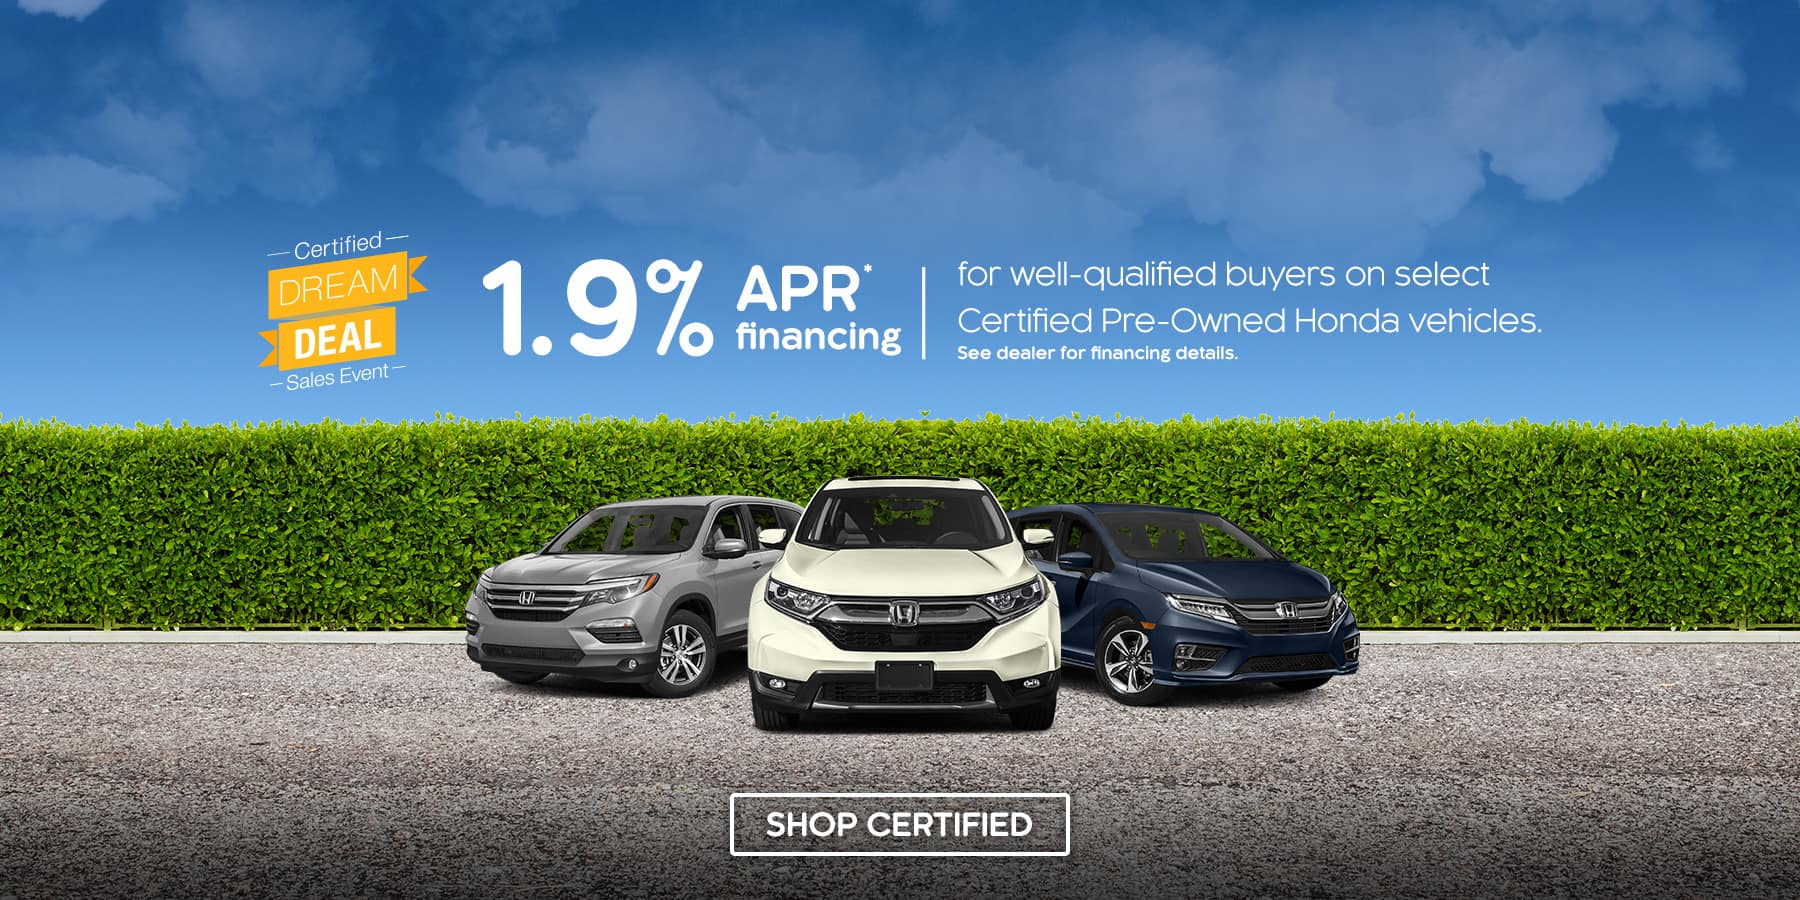 Tamaroff Honda Certified Dream Deal